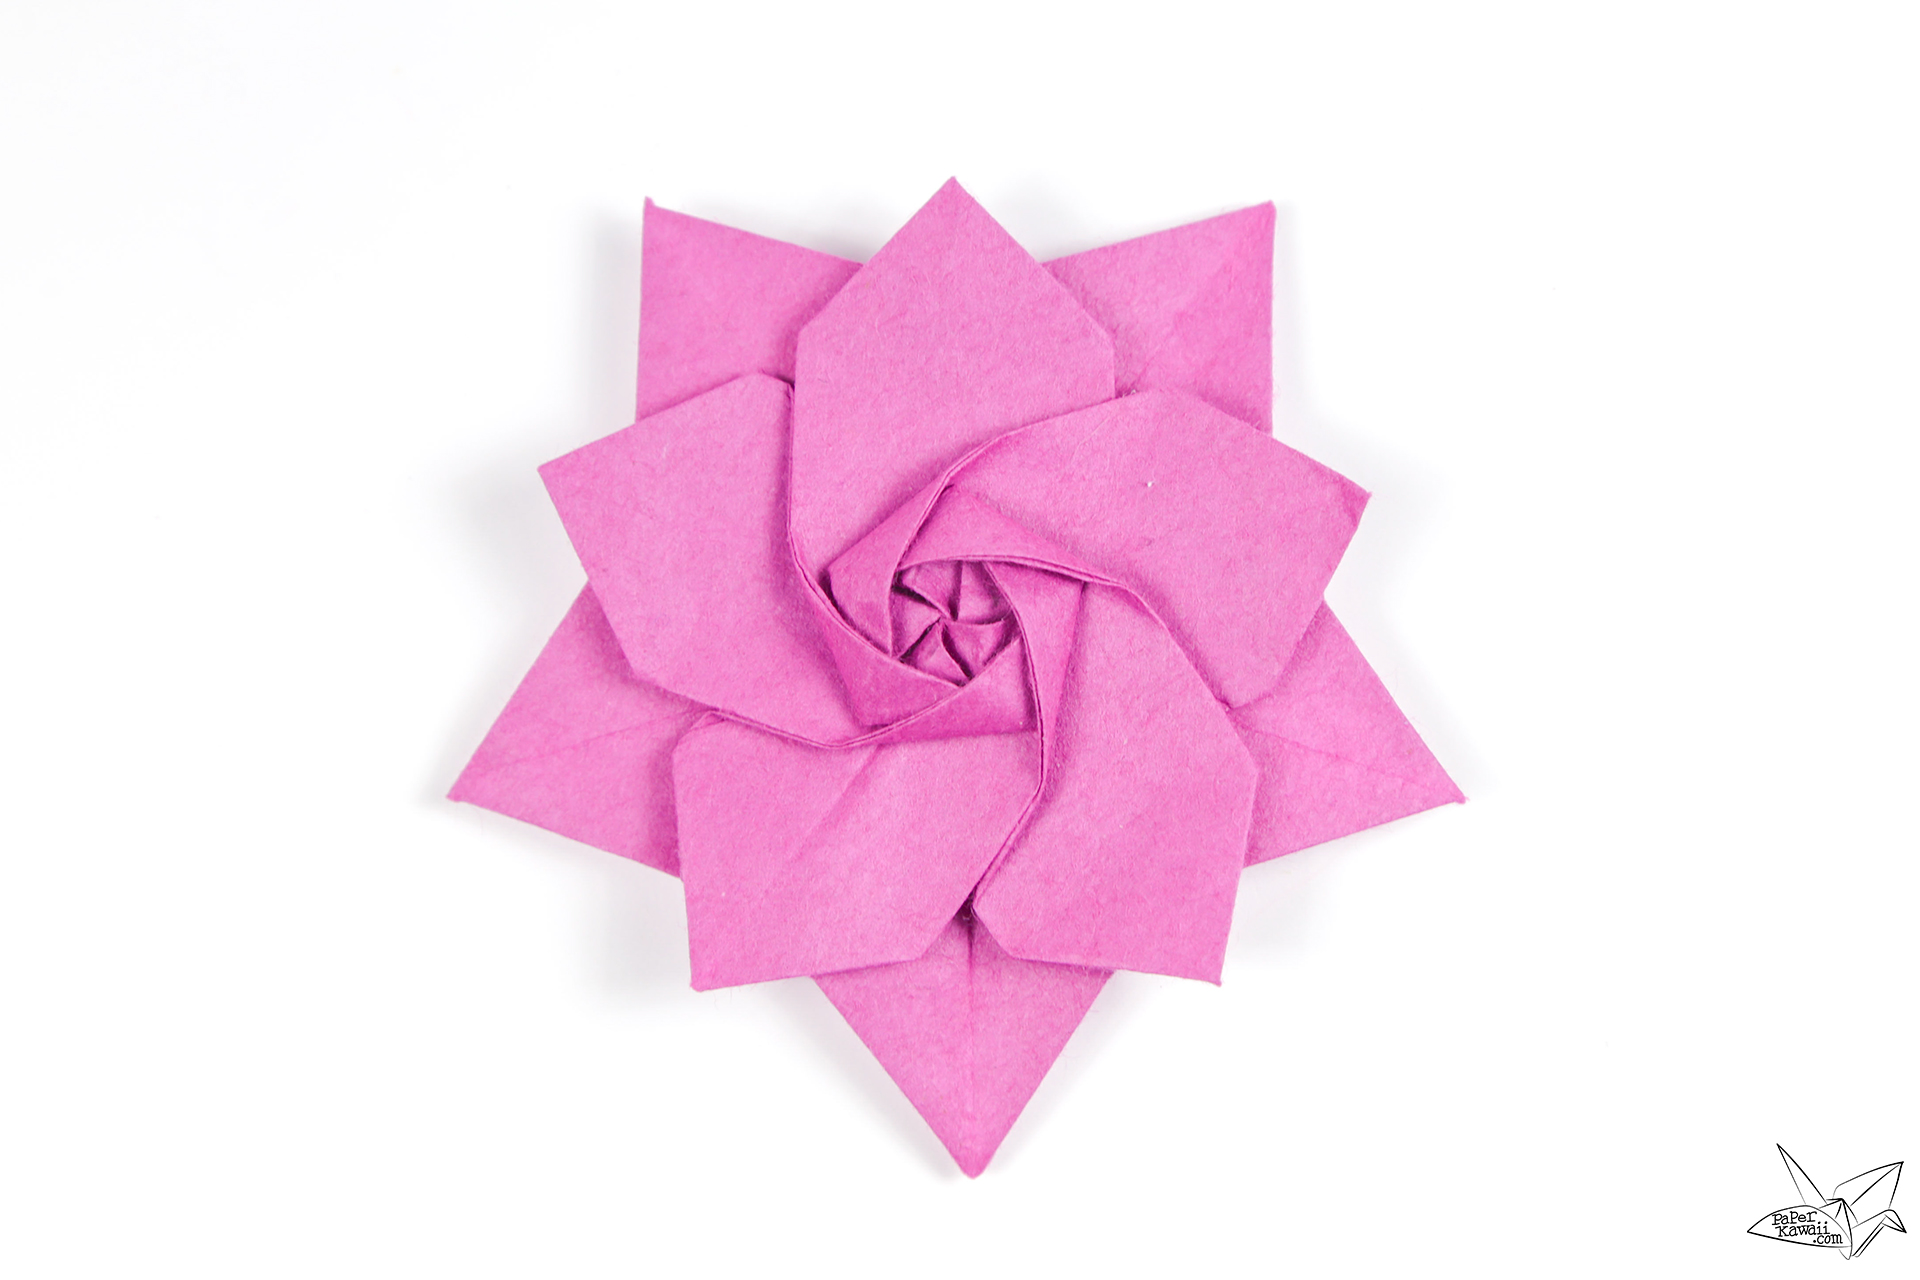 Origami Sakura Star Tutorial - Designed by Ali Bahmani ... - photo#18